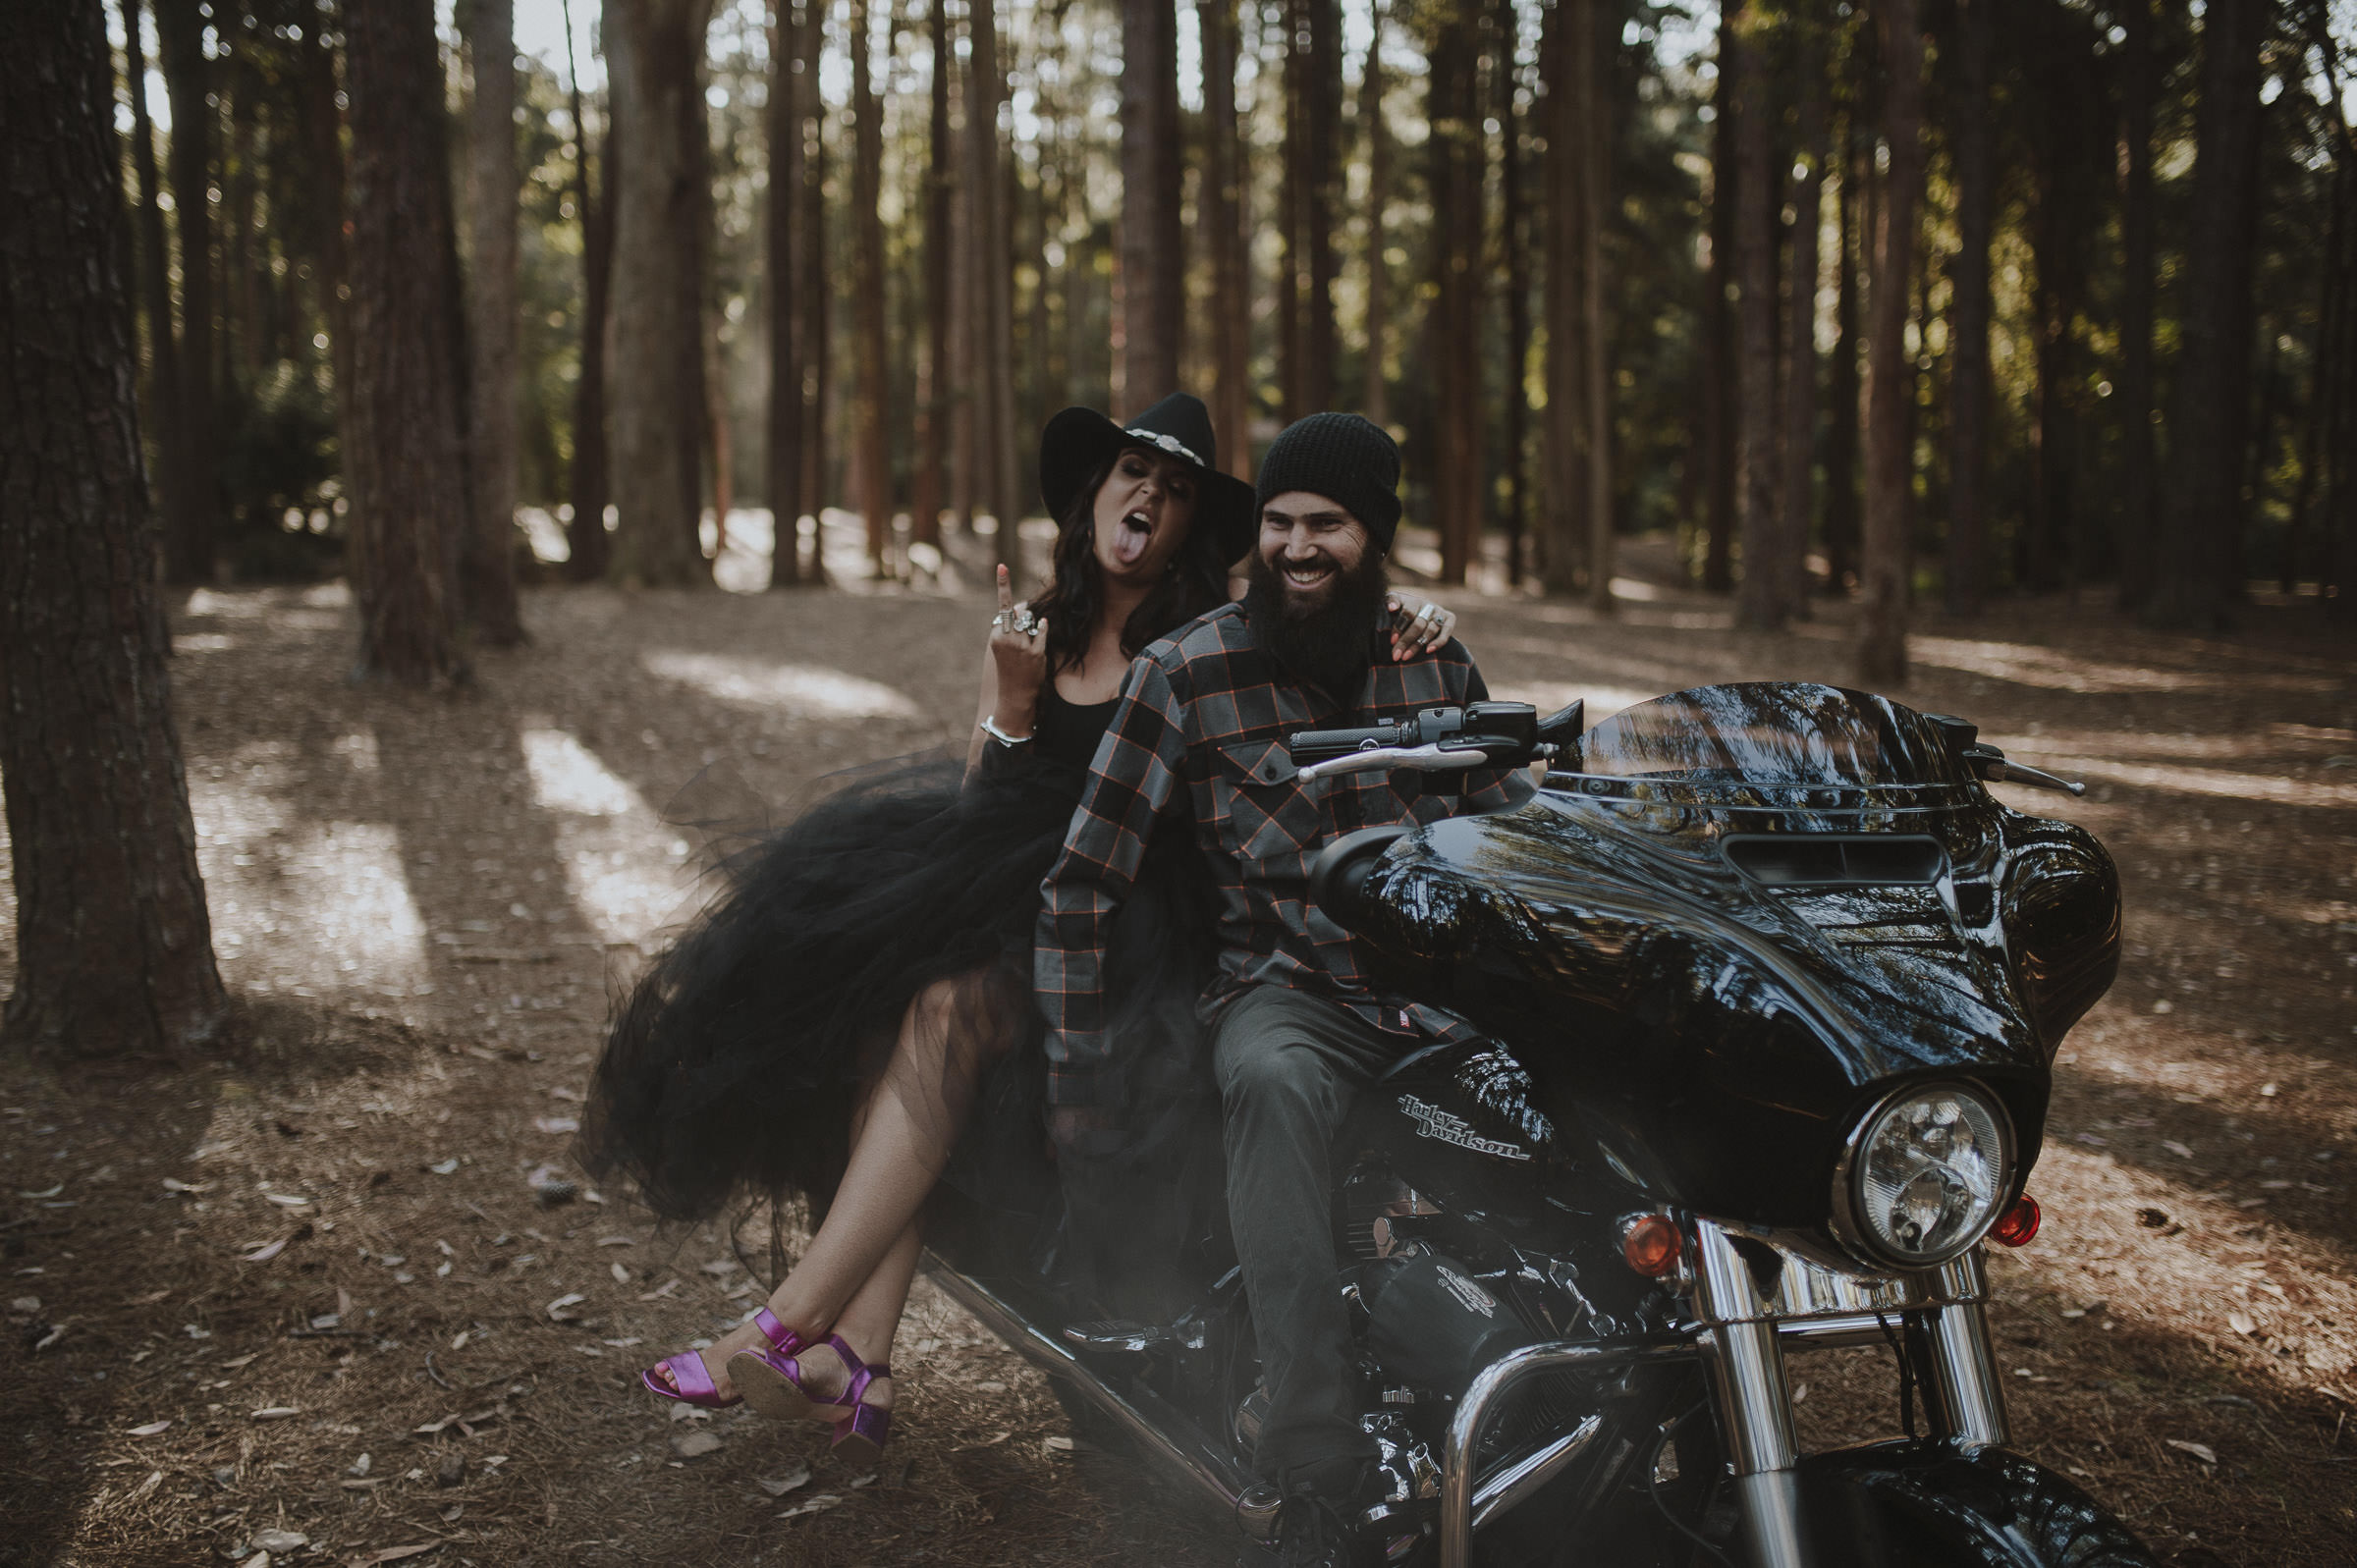 Madeline_Jamie_Watagens_Pine_Forest_Engagement_Shoot_Blog-14.jpg